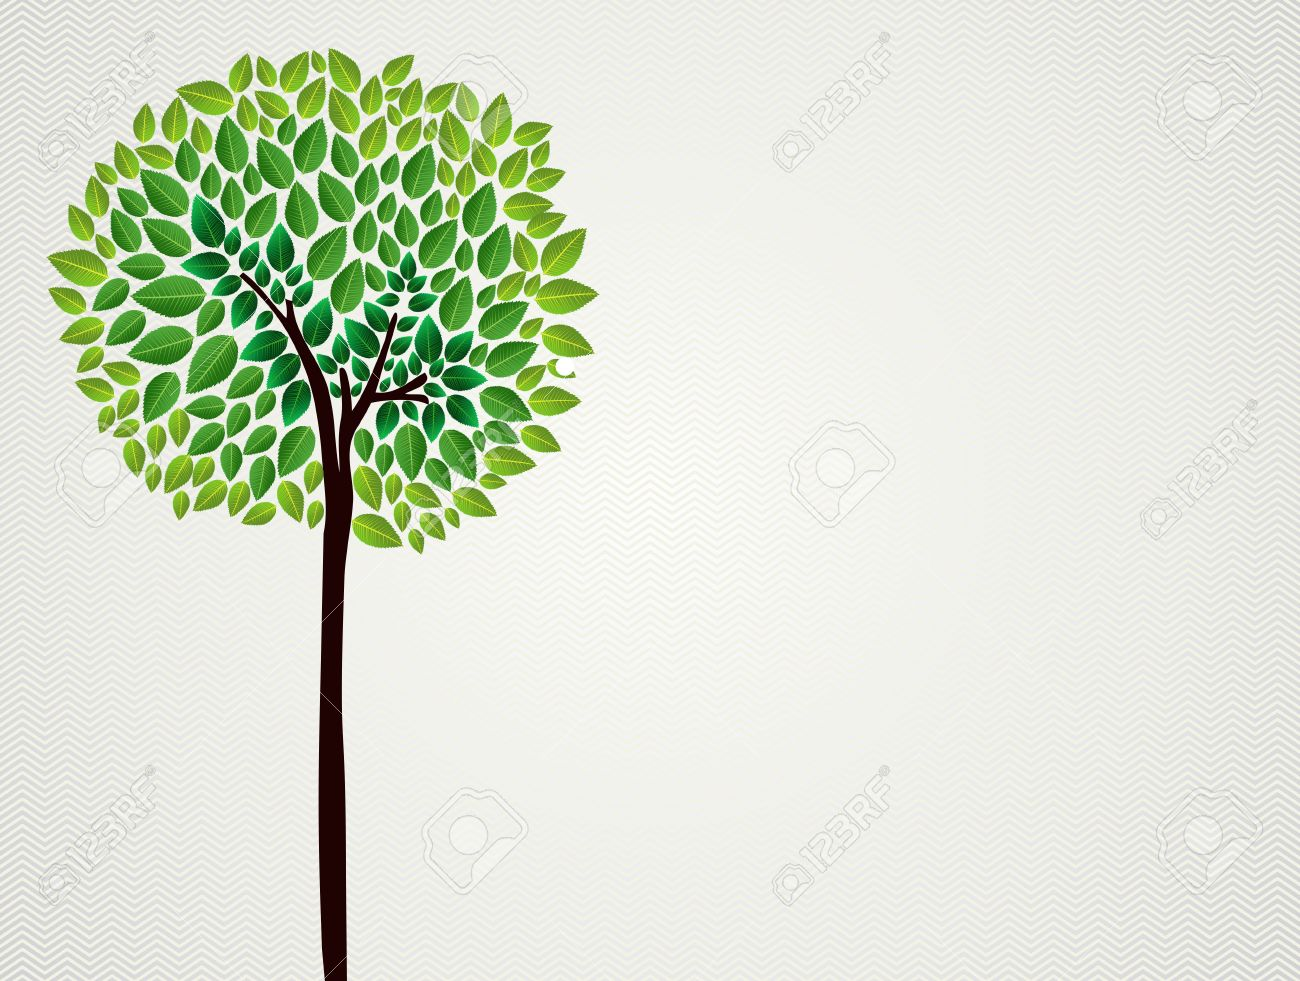 Cute Tree Drawing at GetDrawings.com | Free for personal use Cute ...